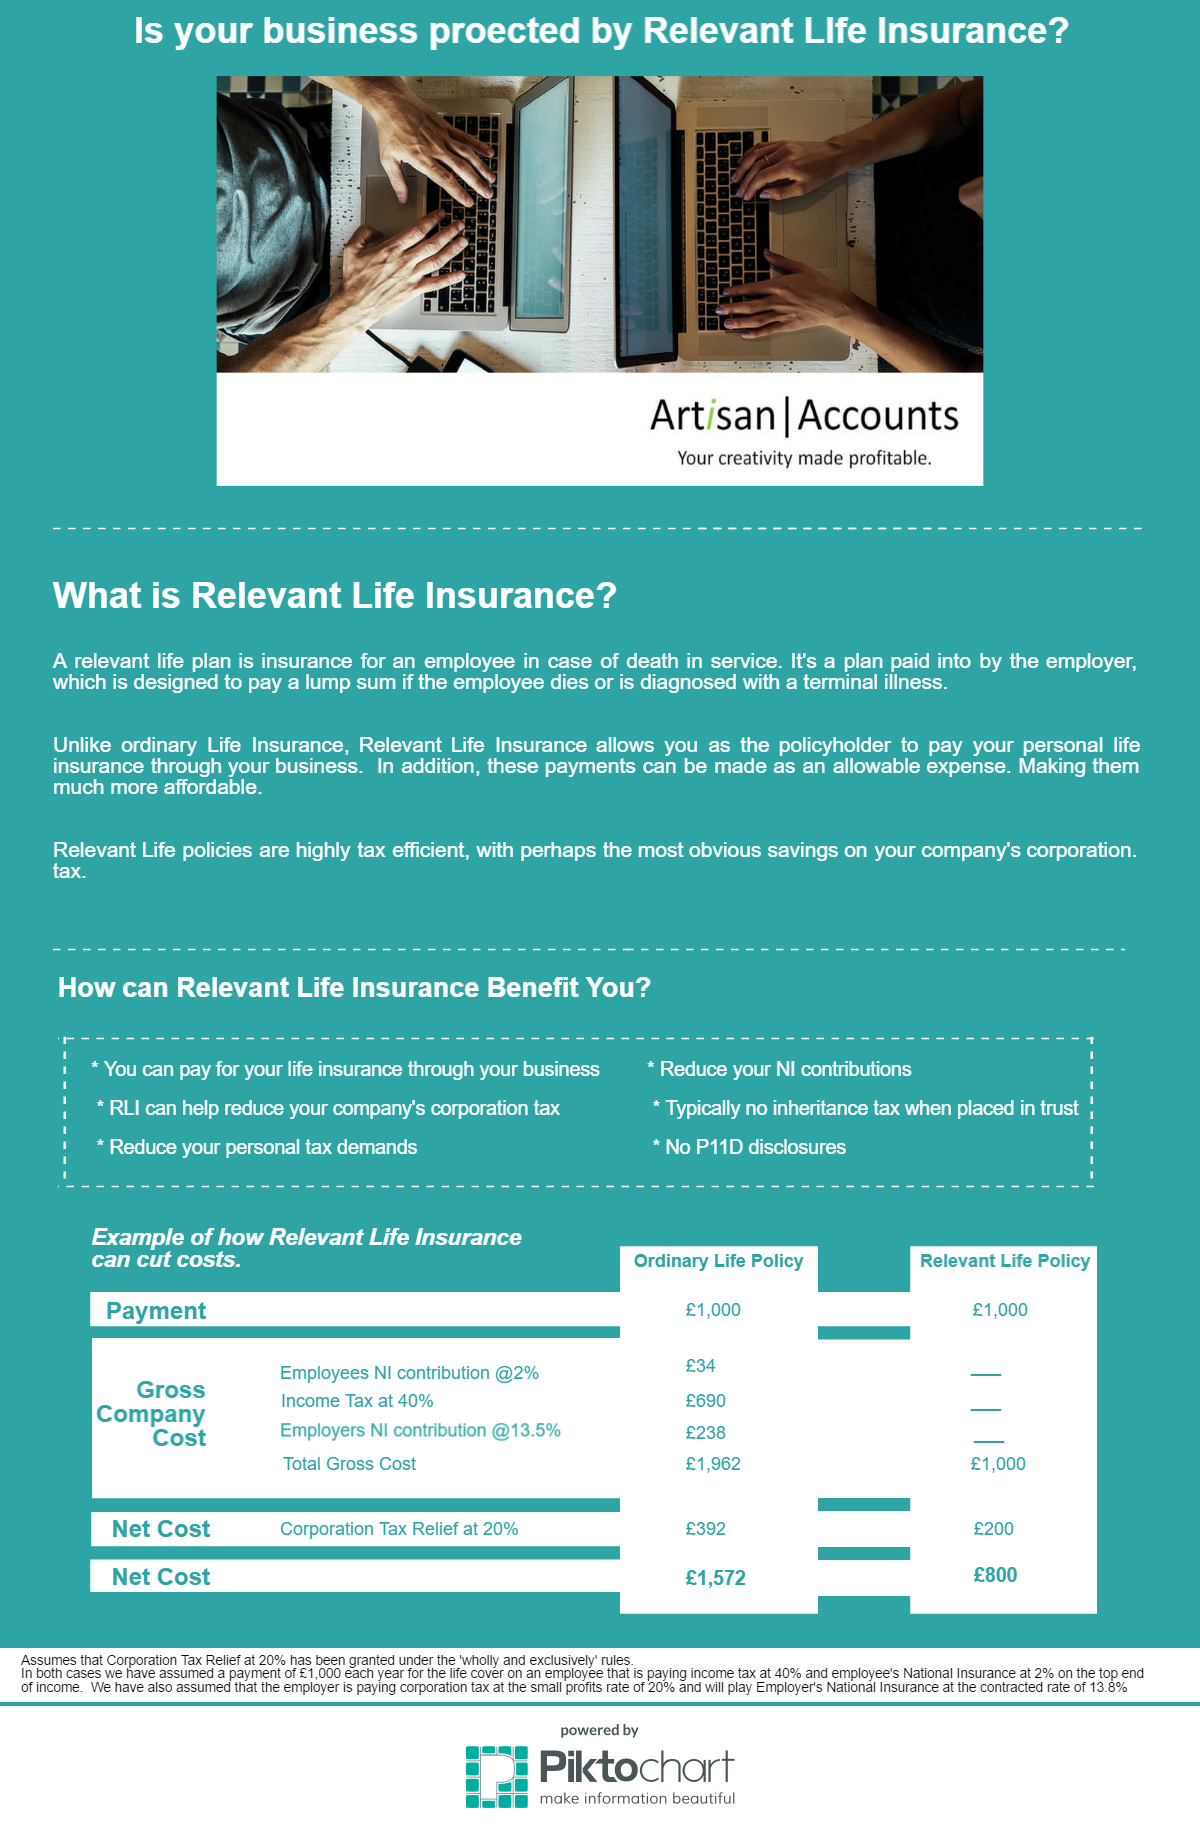 Relevant Life Insurance Infographic